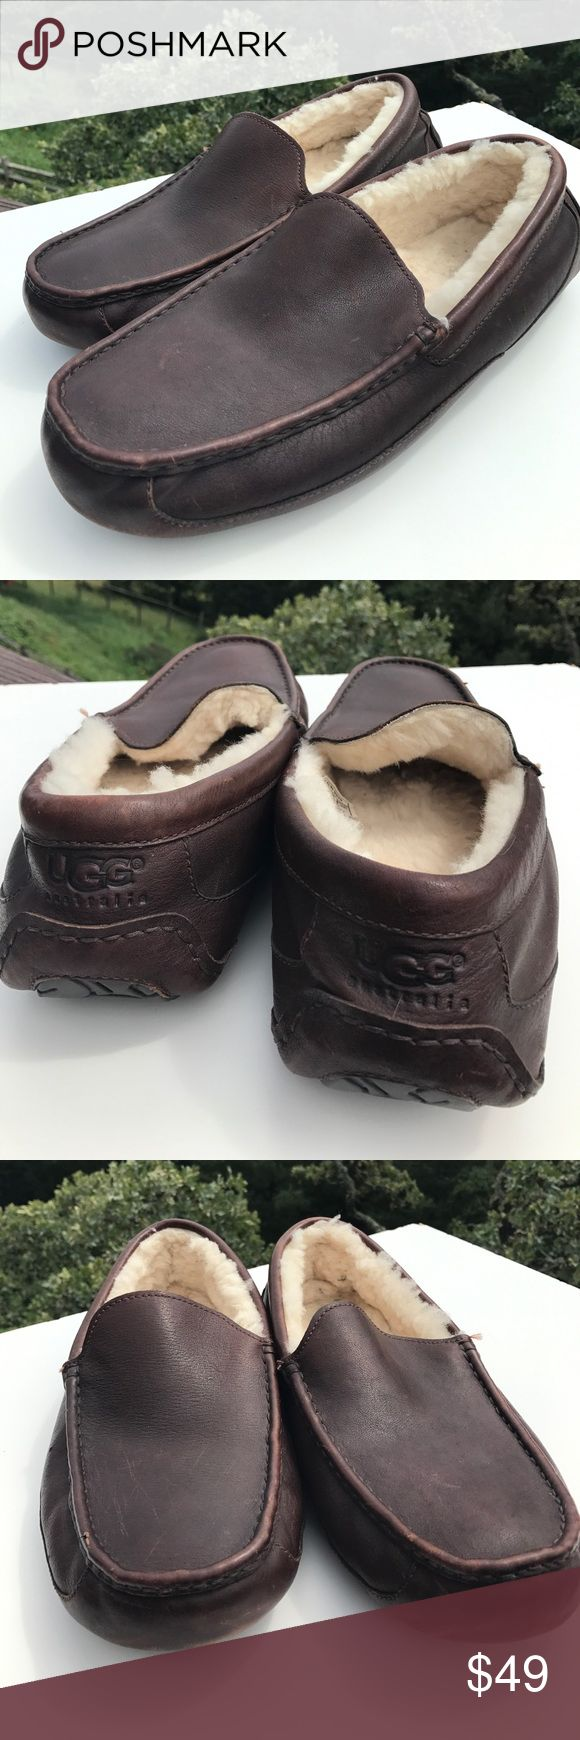 Ugg Ascot Mens Brown Leather Shearling Slippers 15 Model 5379.  Some scratches/nicks to leather - fade with leather cream. UGG Shoes Loafers & Slip-Ons